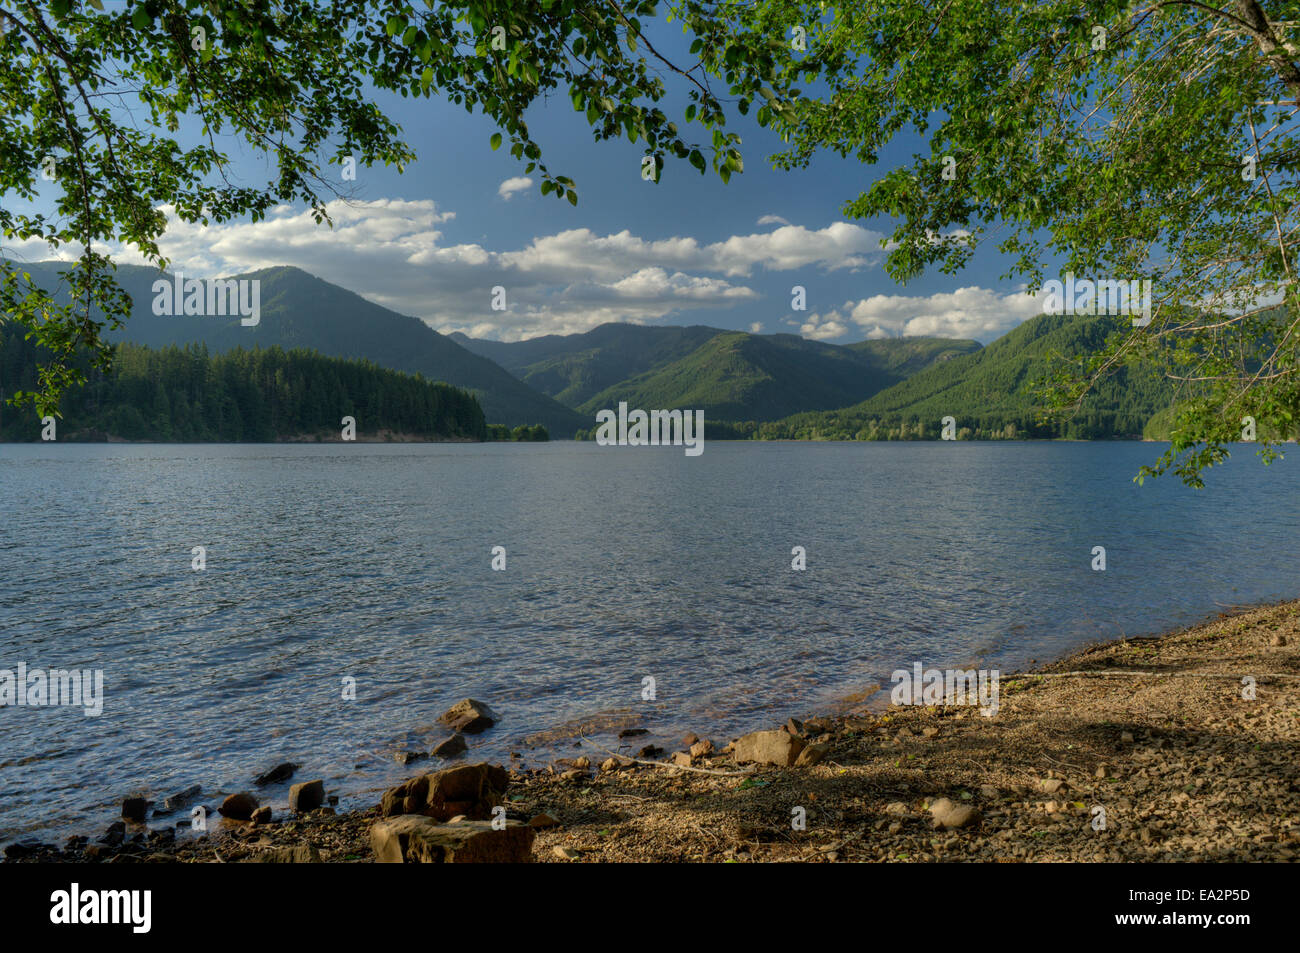 Oregon's Detroit Lake as seen from the Cove Creek campground - Stock Image